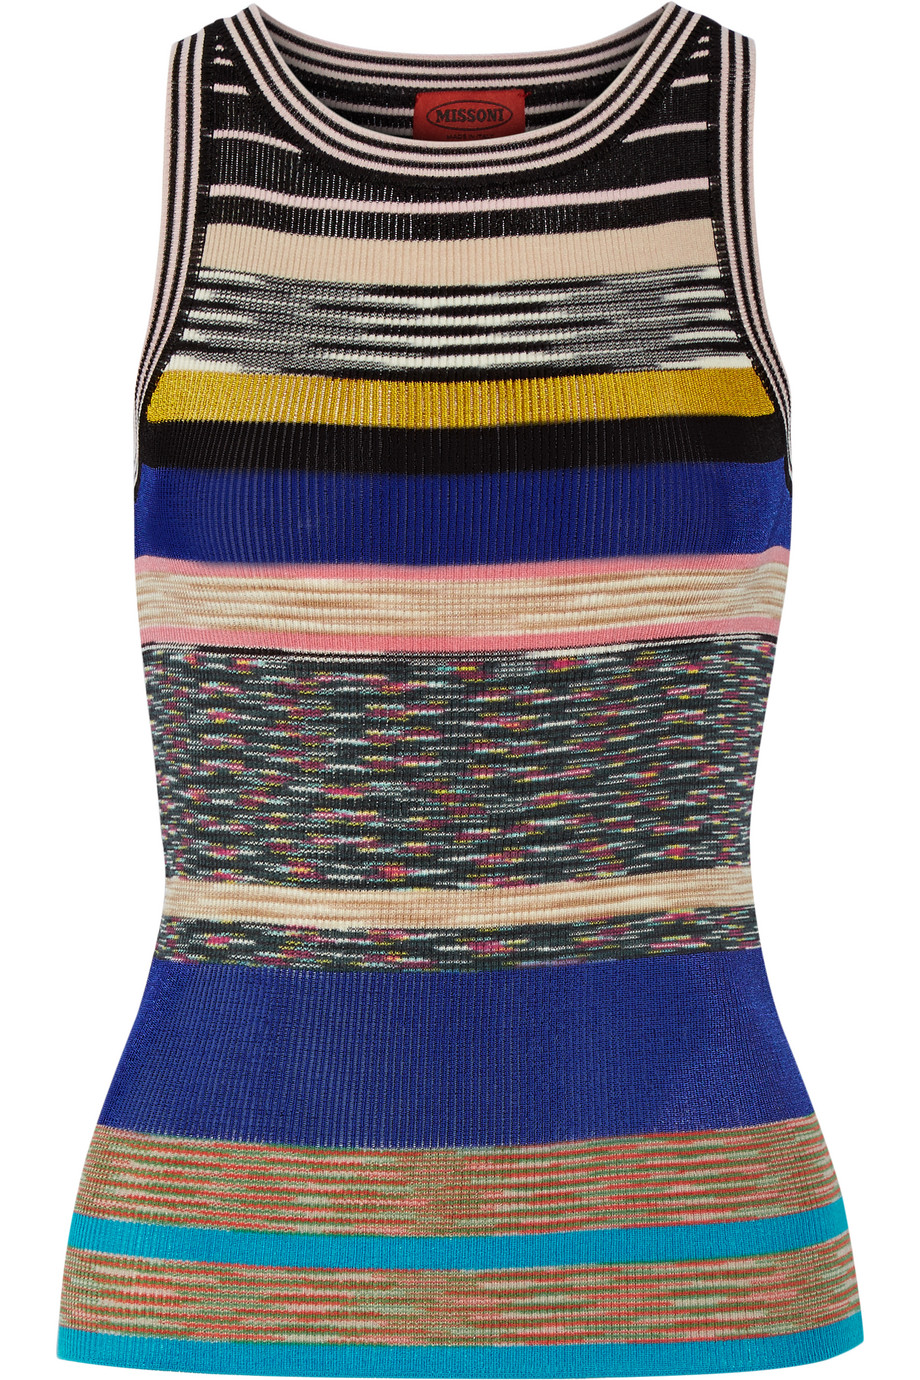 Missoni Striped Crochet-Knit Tank, Blue, Women's, Size: 36